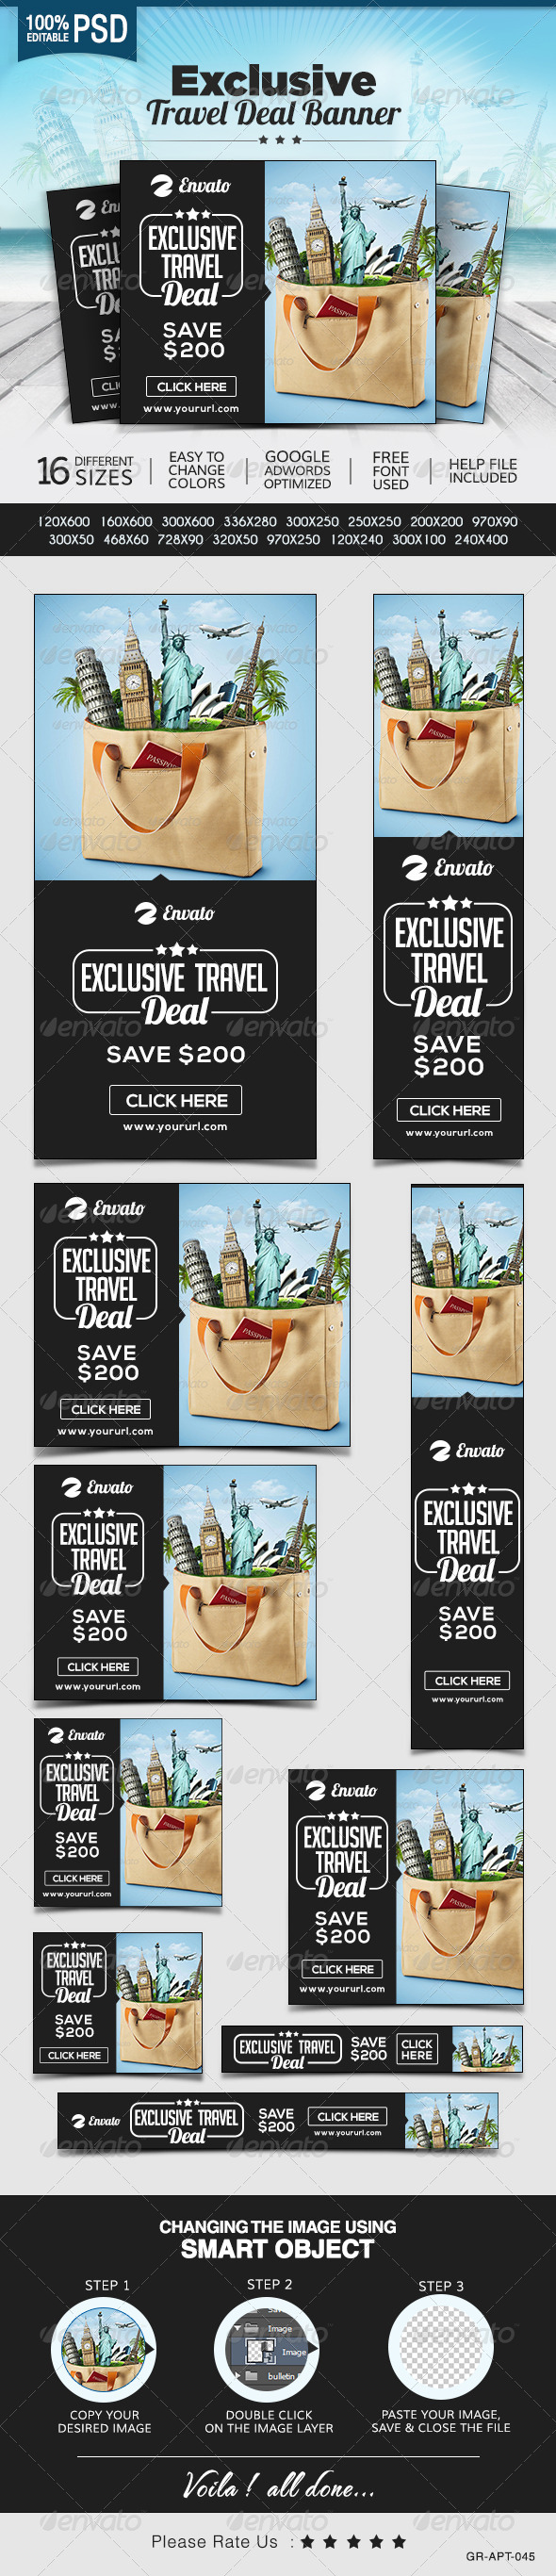 Beautiful Google Adwords Template Pictures Inspiration - Examples ...